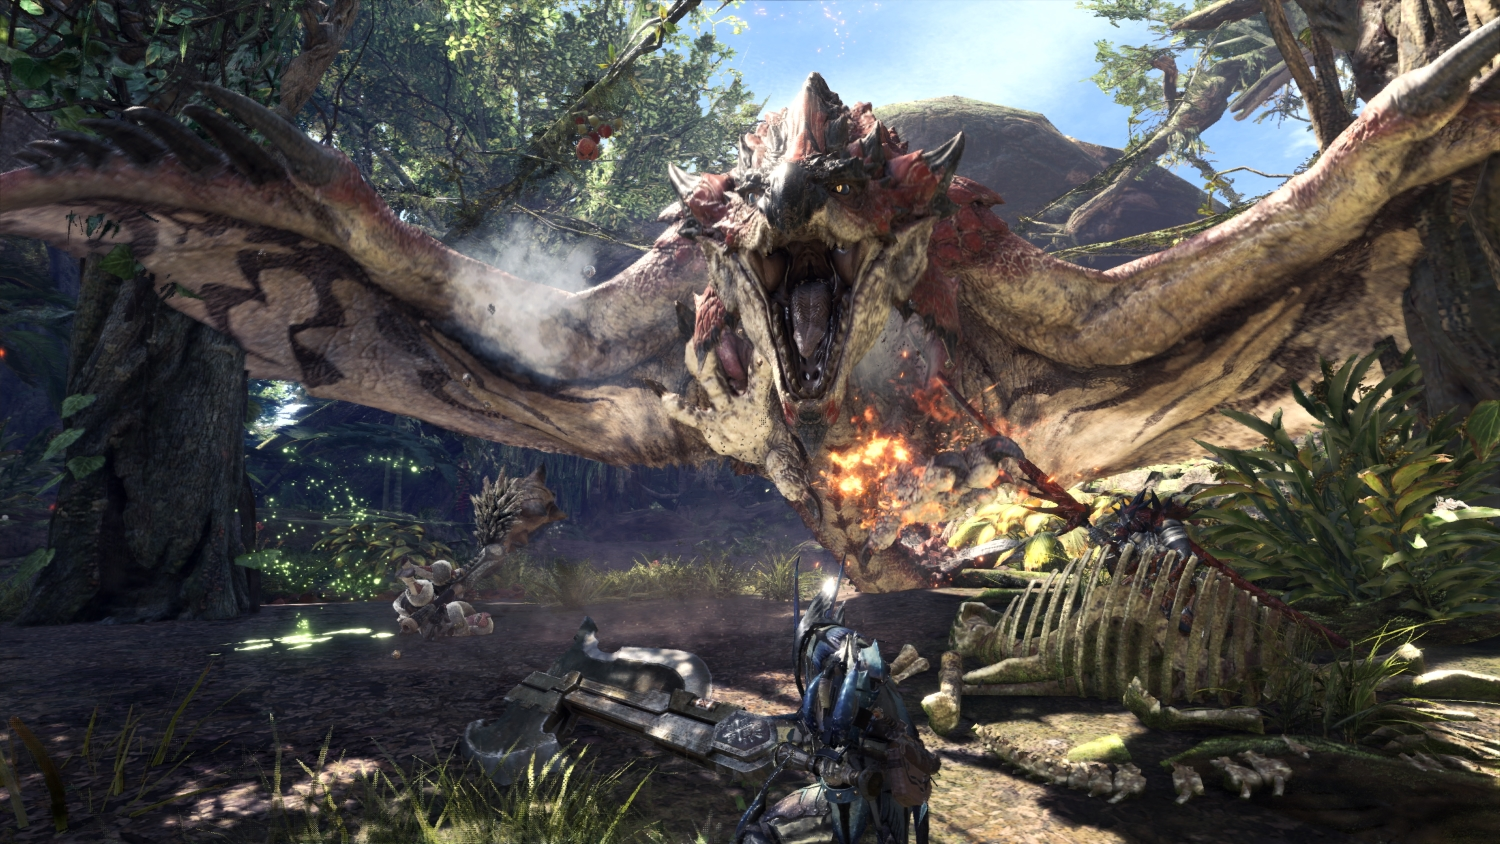 Monster Hunter: World - what's your favourite weapon?